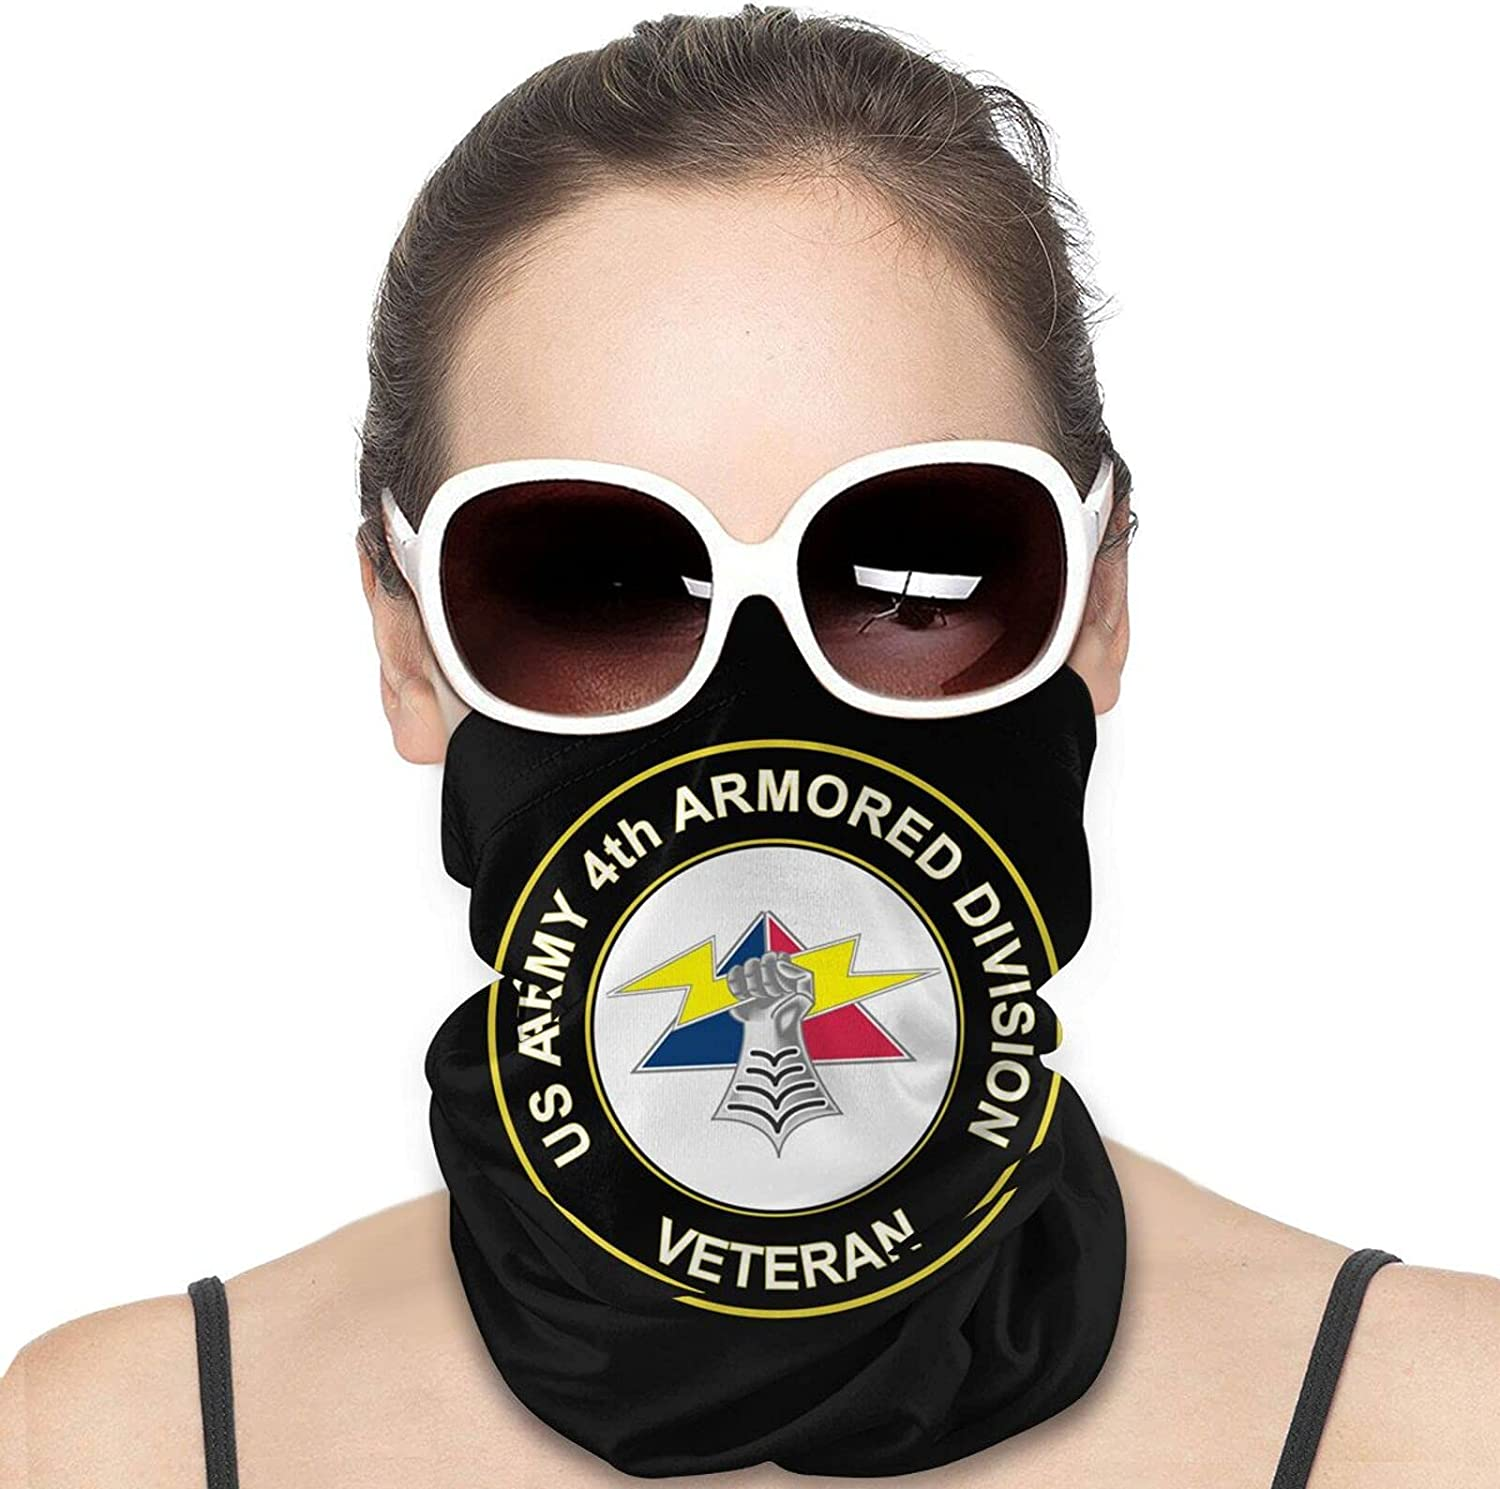 U.S. Army 4th Armored Division Unit Crest Veteran Round Neck Gaiter Bandnas Face Cover Uv Protection Prevent bask in Ice Scarf Headbands Perfect for Motorcycle Cycling Running Festival Raves Outdoors